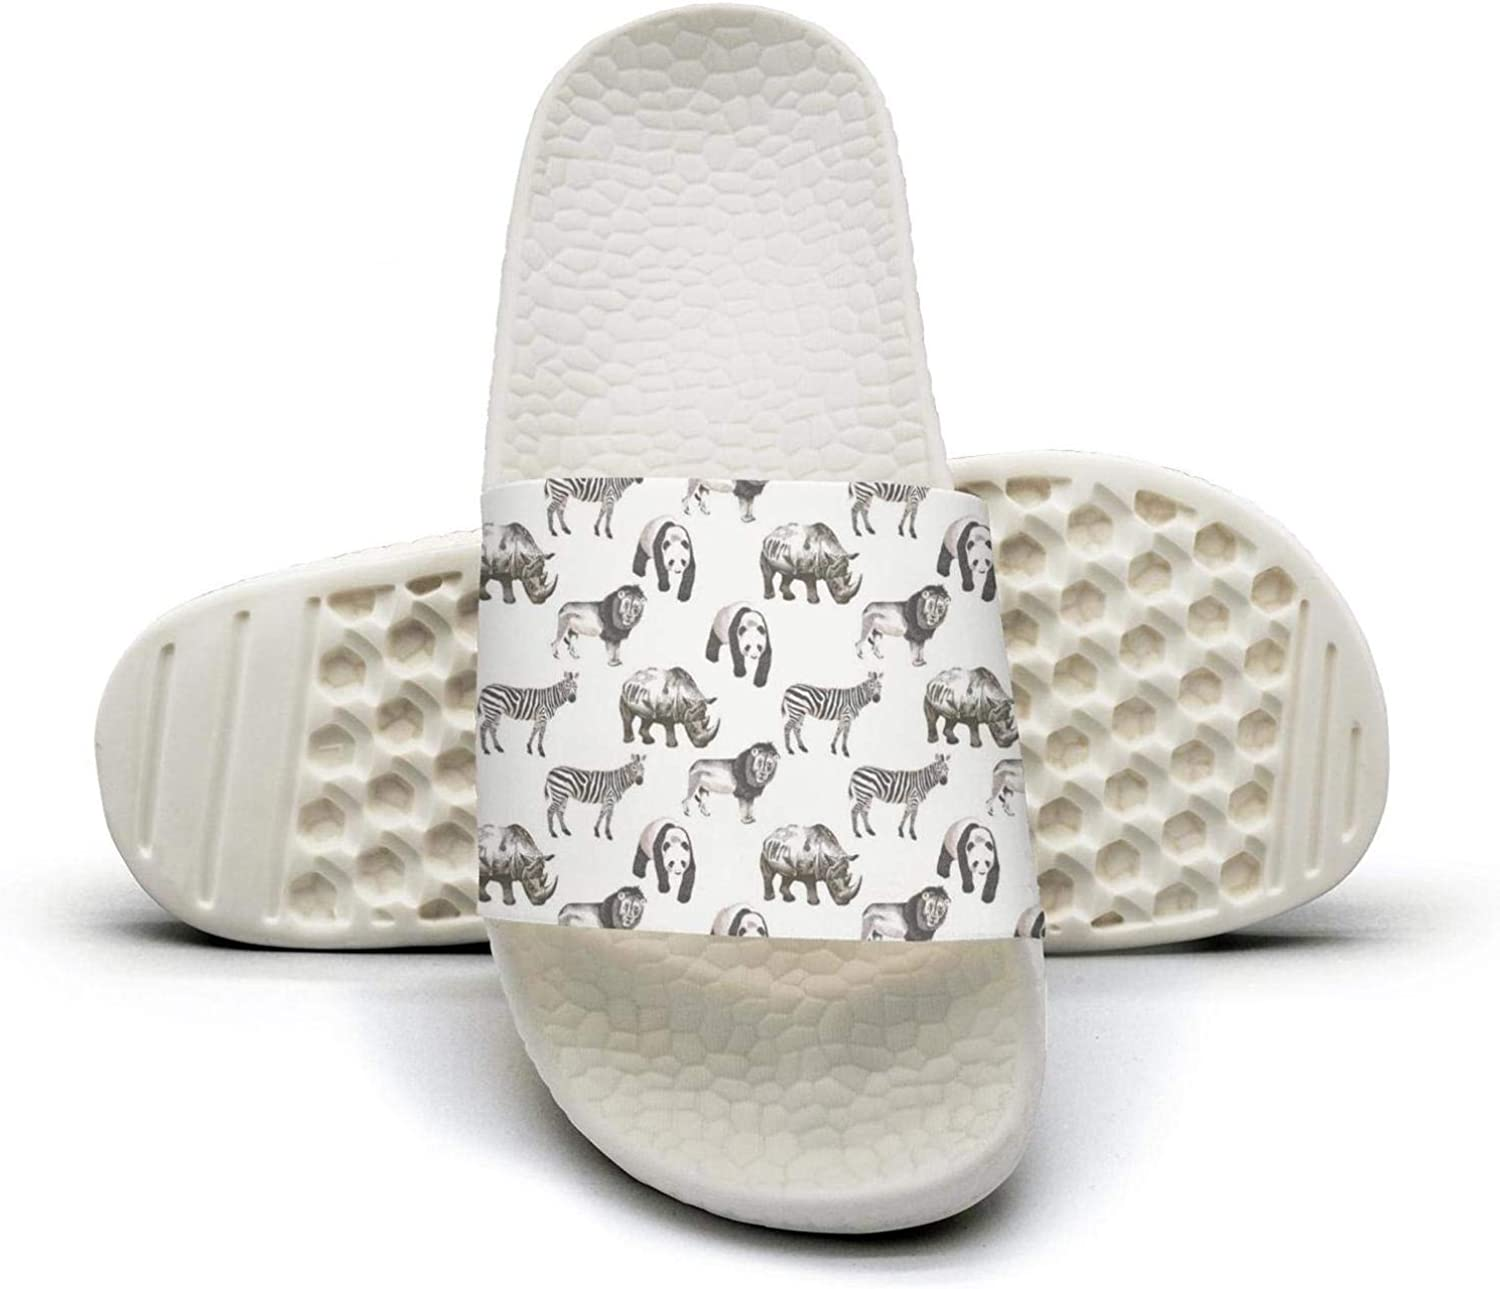 Young Women Animal Lions zerba Panada Rhinoceros Slip on Beach Sandals and Anti-Slip Shower Slipper Comfort Sandals